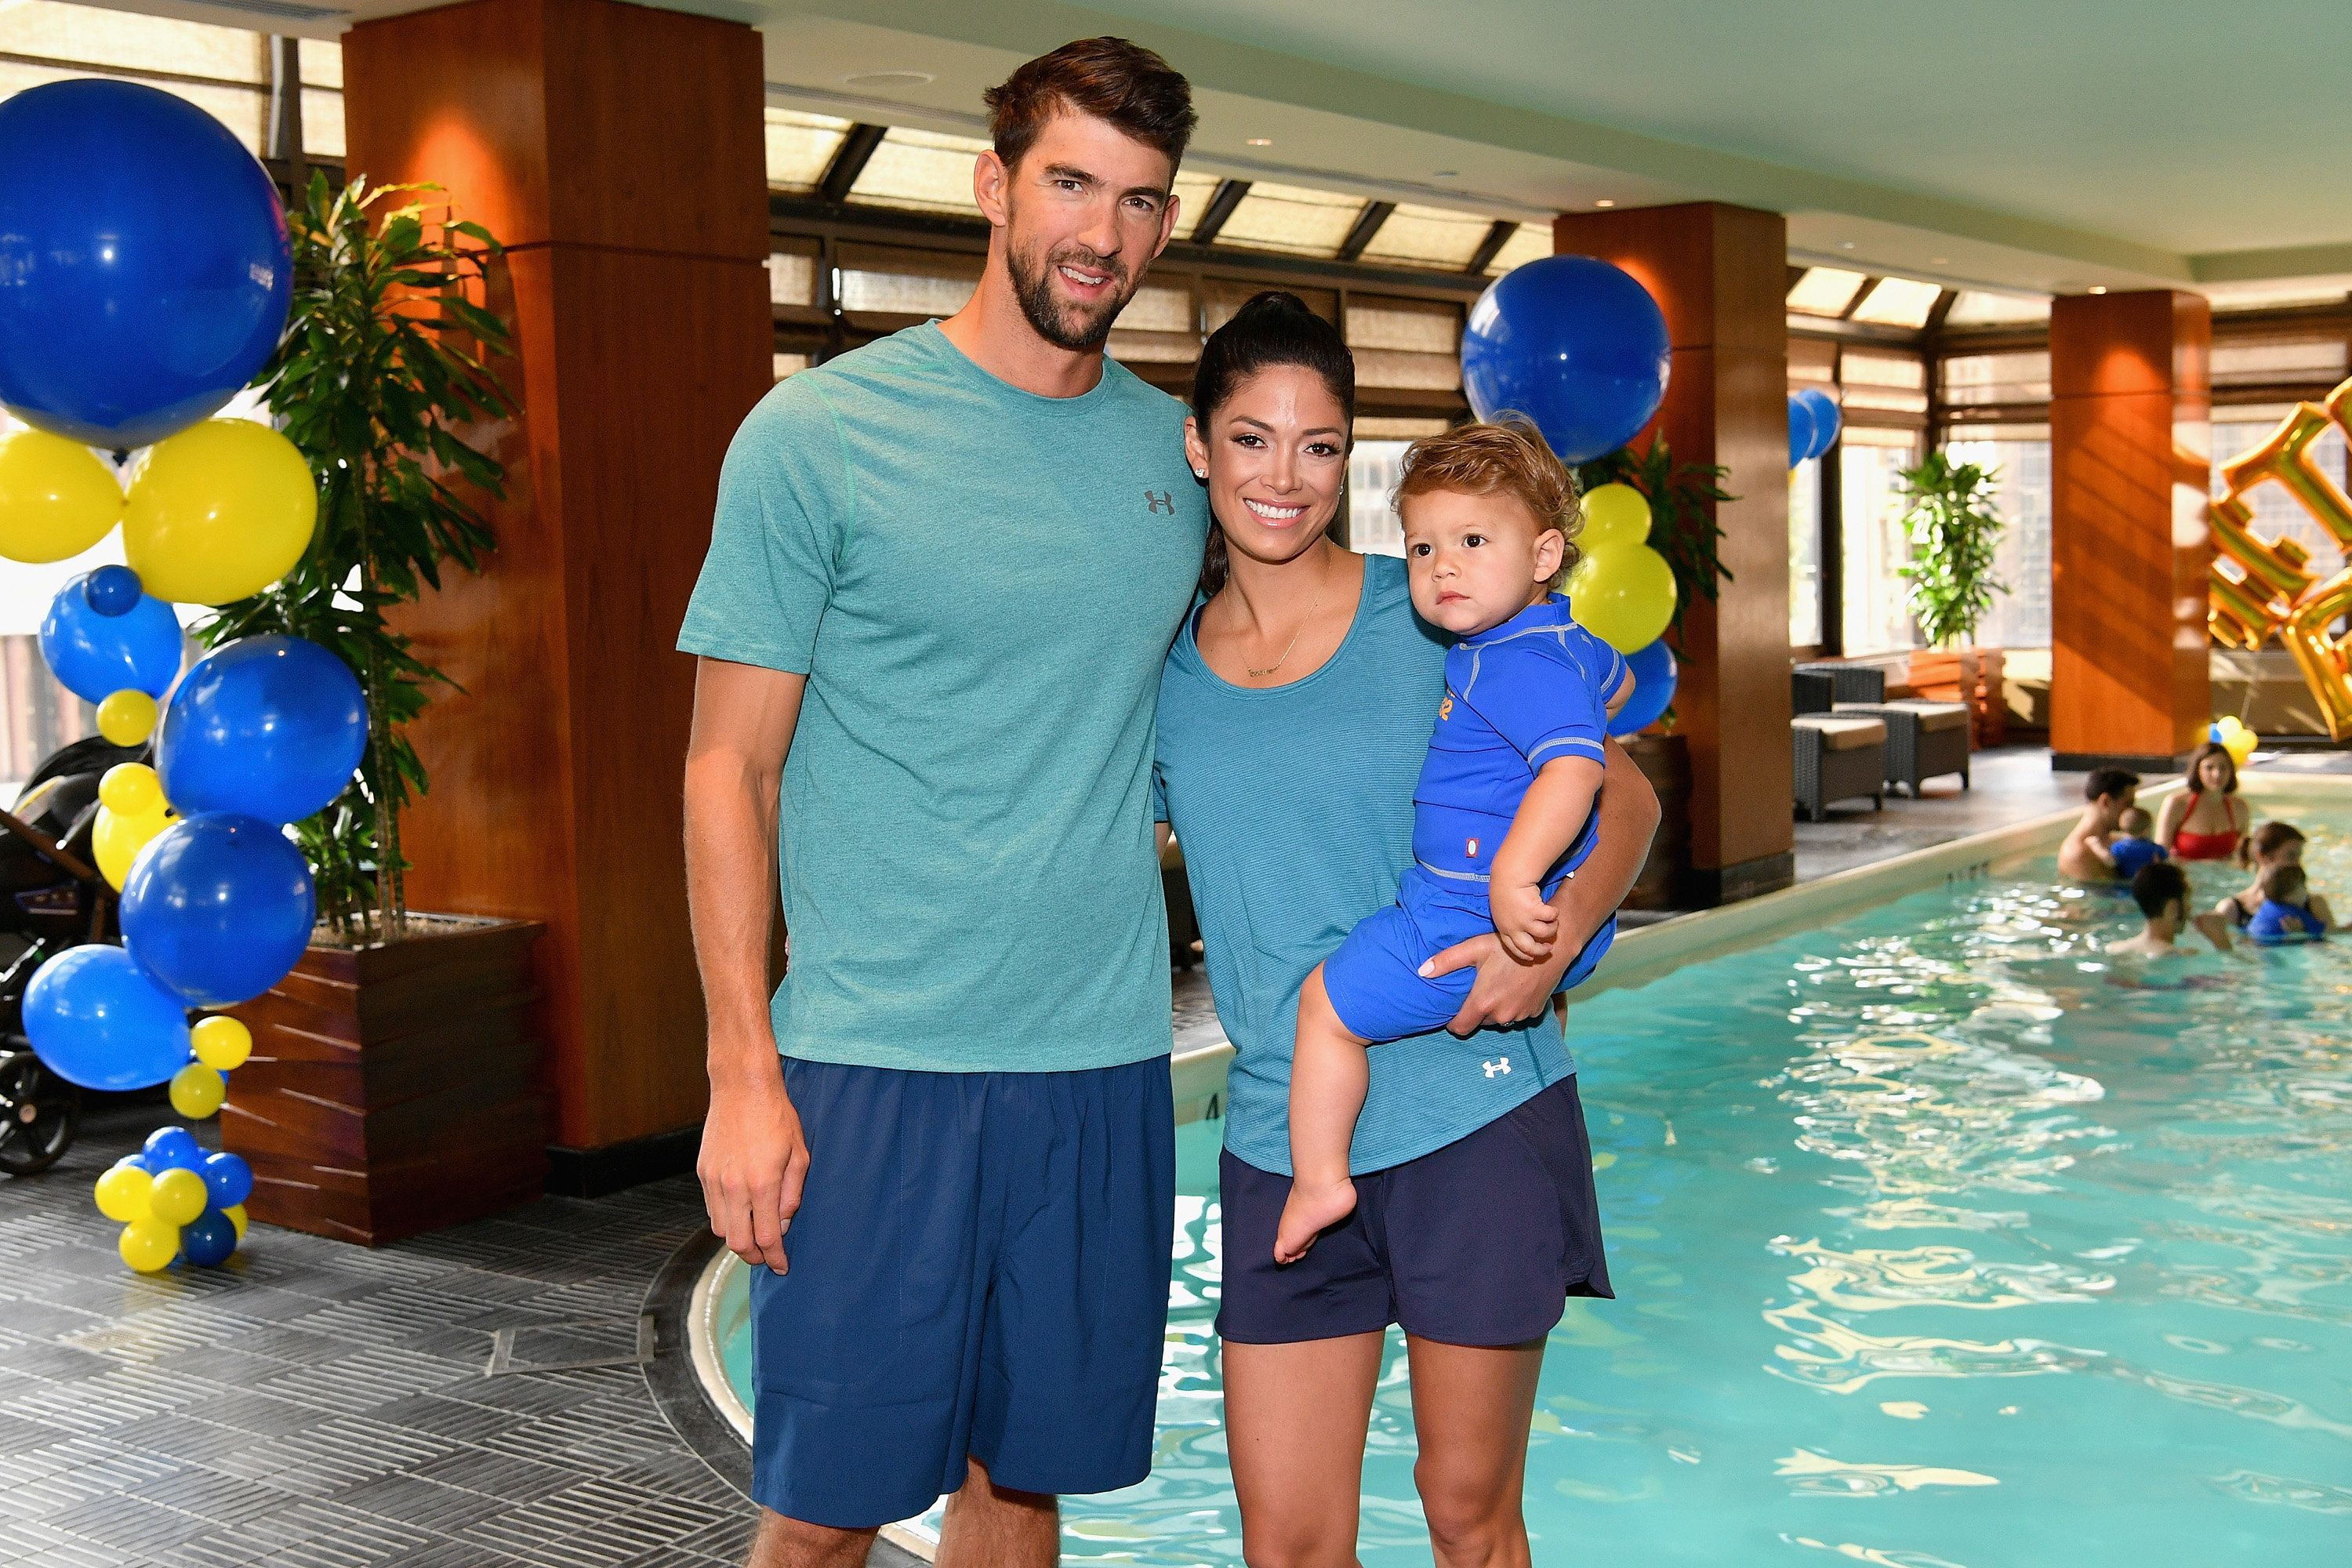 NEW YORK, NY - AUGUST 21:  Michael Phelps, Nicole Phelps and Boomer Phelps attend the Huggies Little Swimmers #trainingfor2032 Swim Class With The Phelps Foundation on August 21, 2017 in New York City.  (Photo by Dia Dipasupil/Getty Images for Huggies)